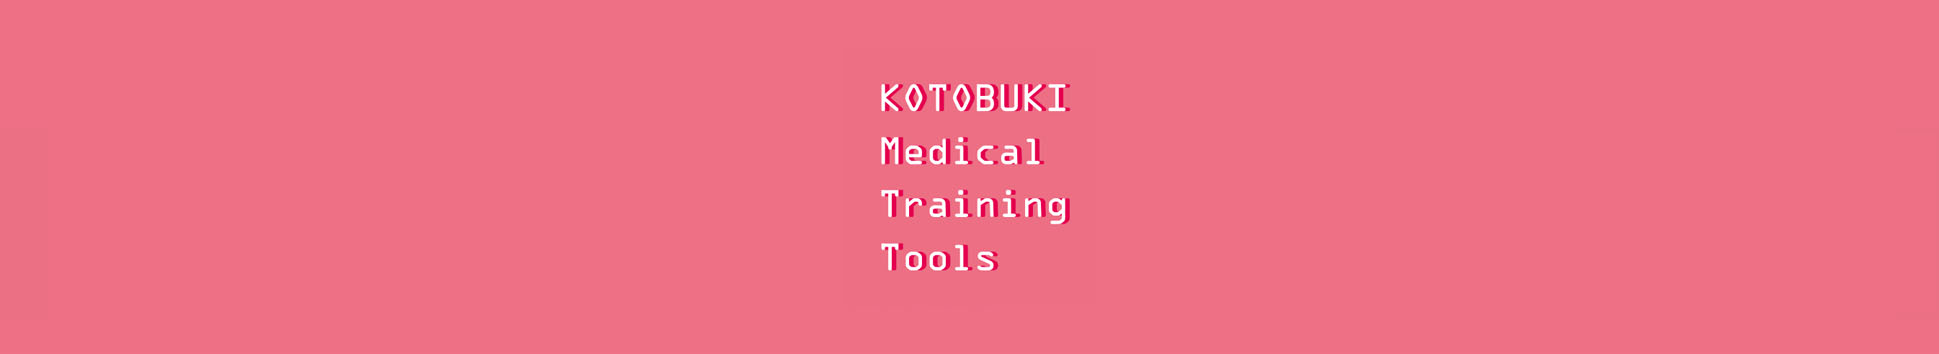 kotobuki medical training tools